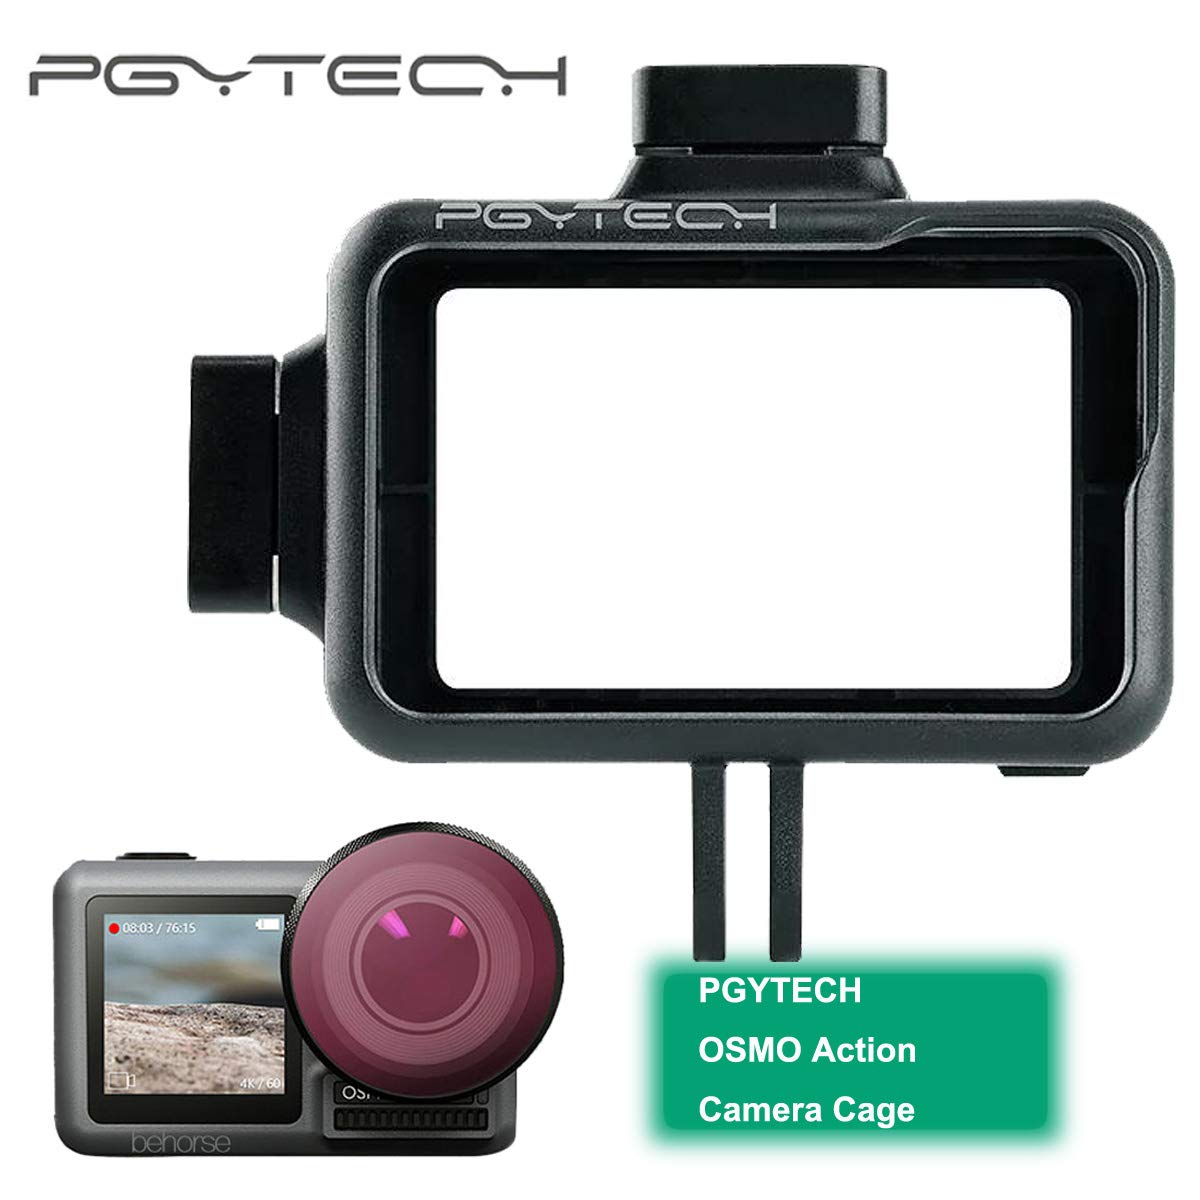 PGYTECH OSMO Action Accessories Camera Cage black